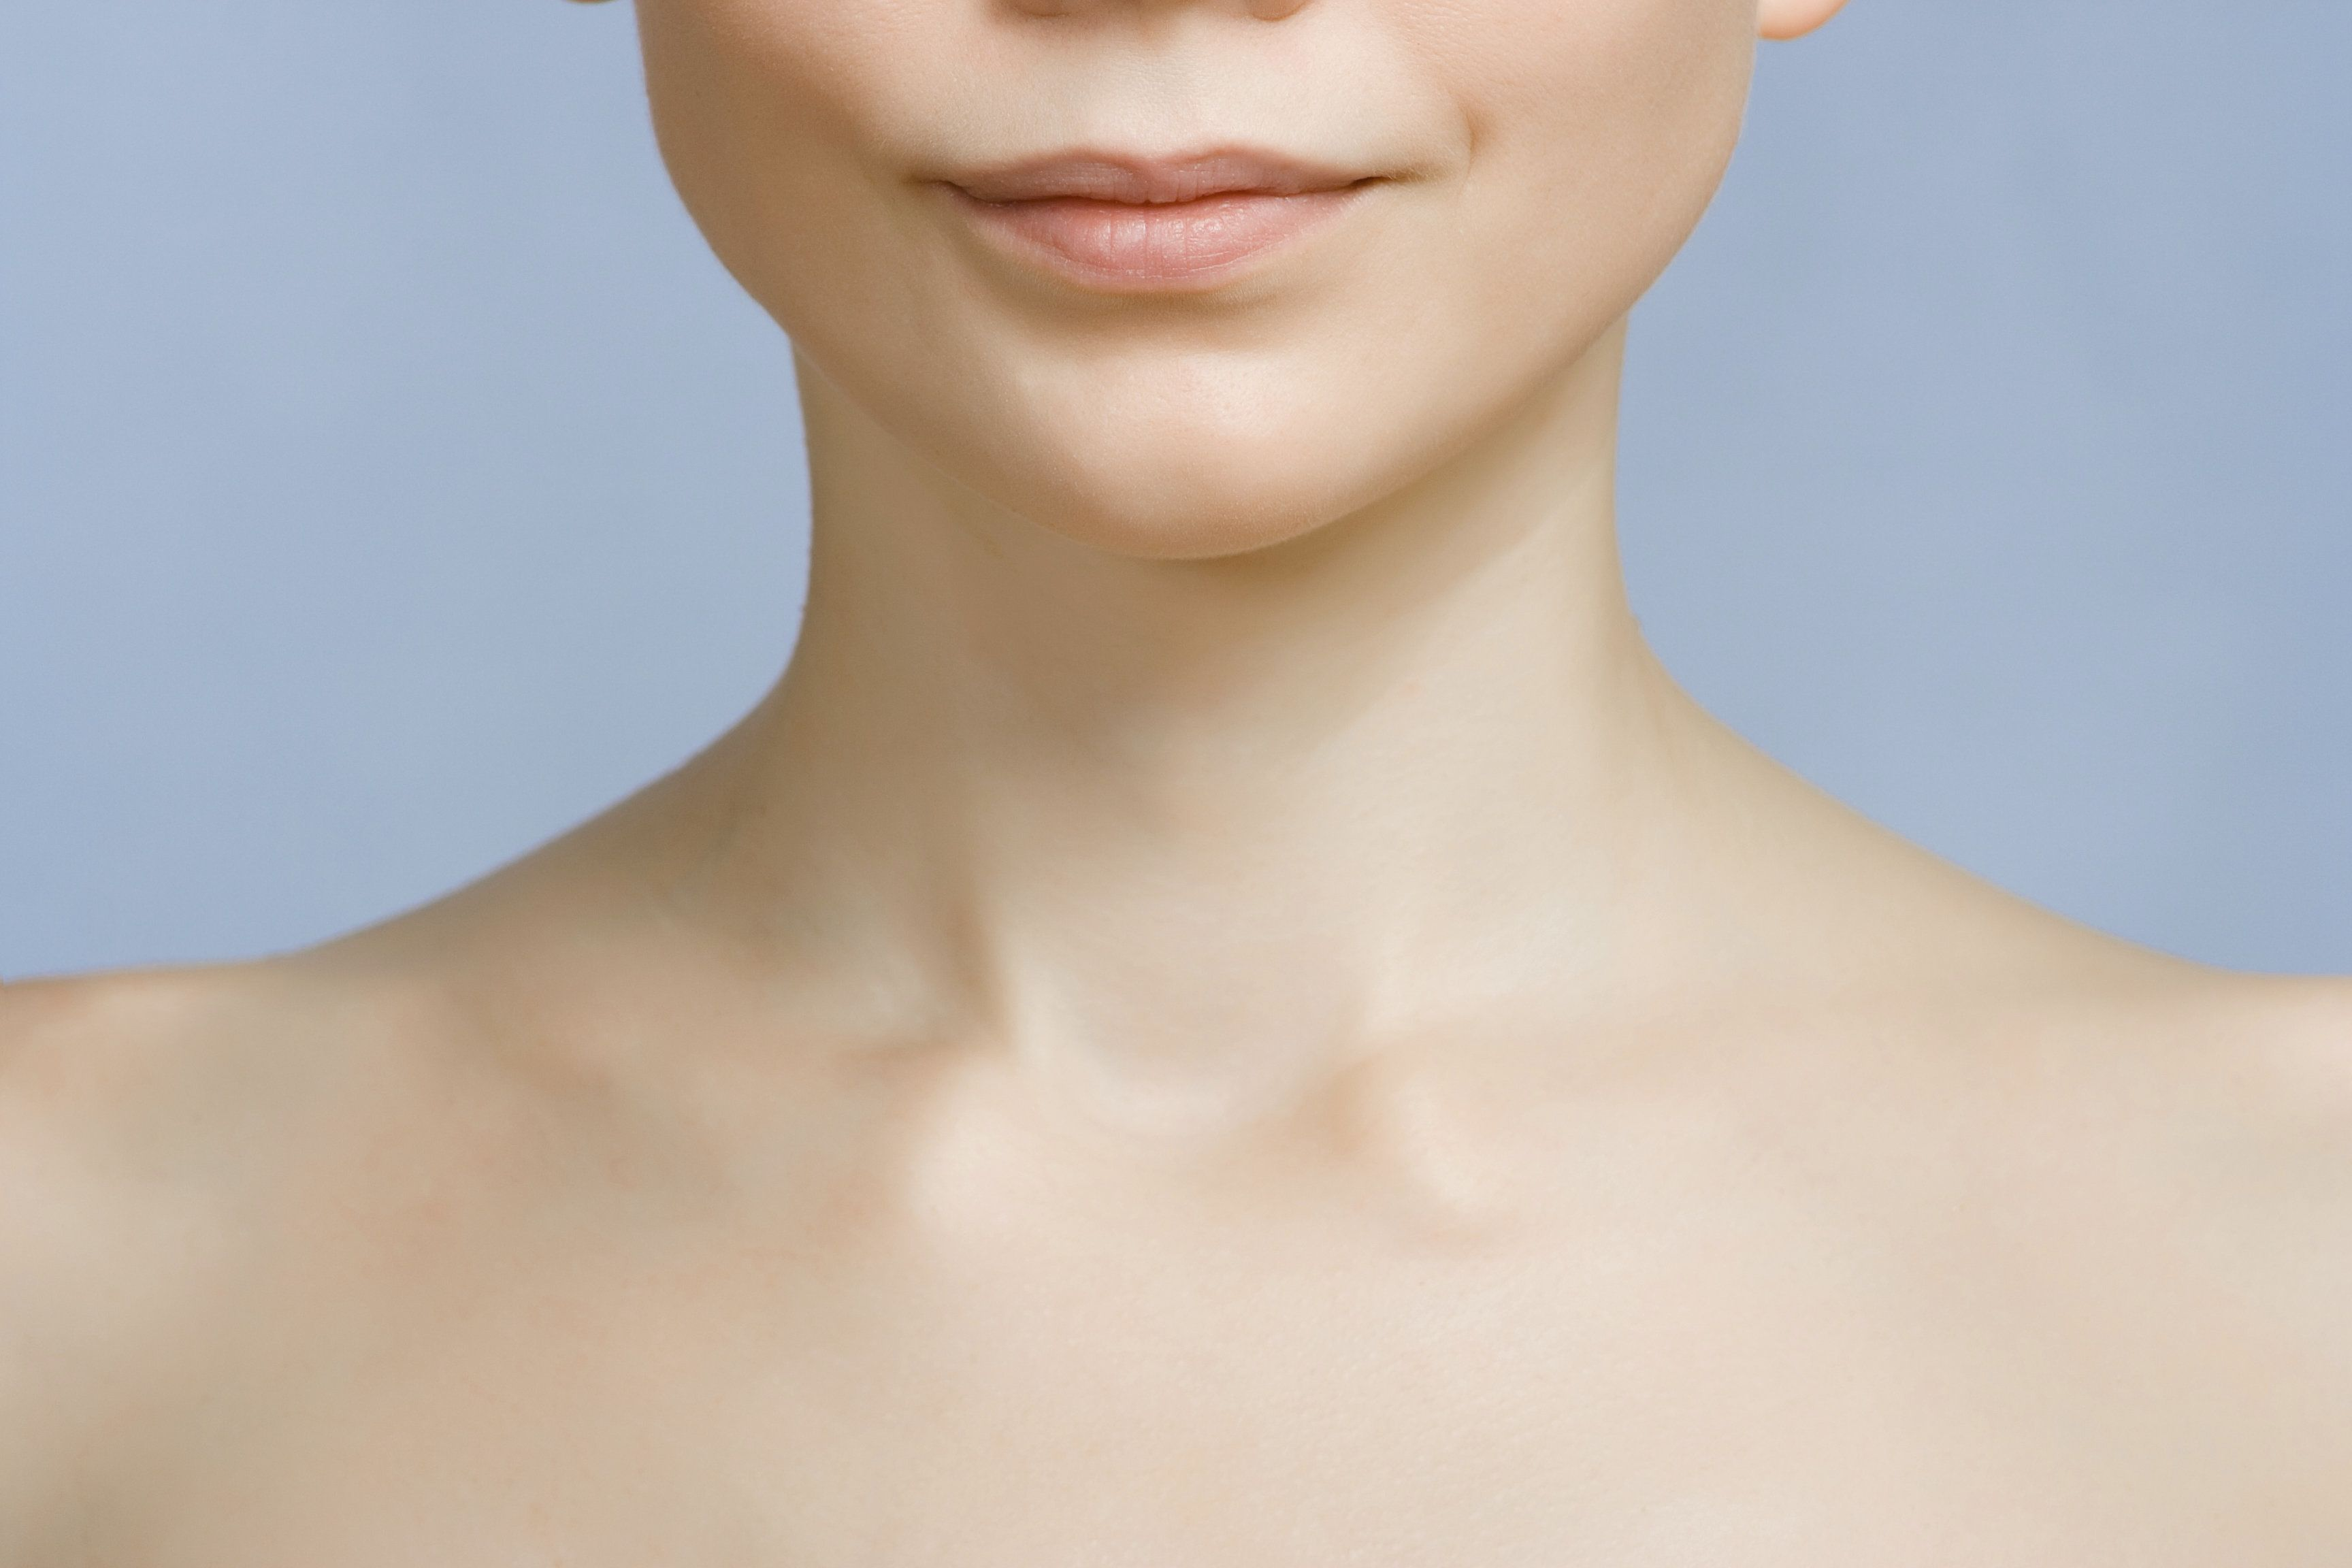 Up close photograph of a woman's neck and lower face in front of a blue background